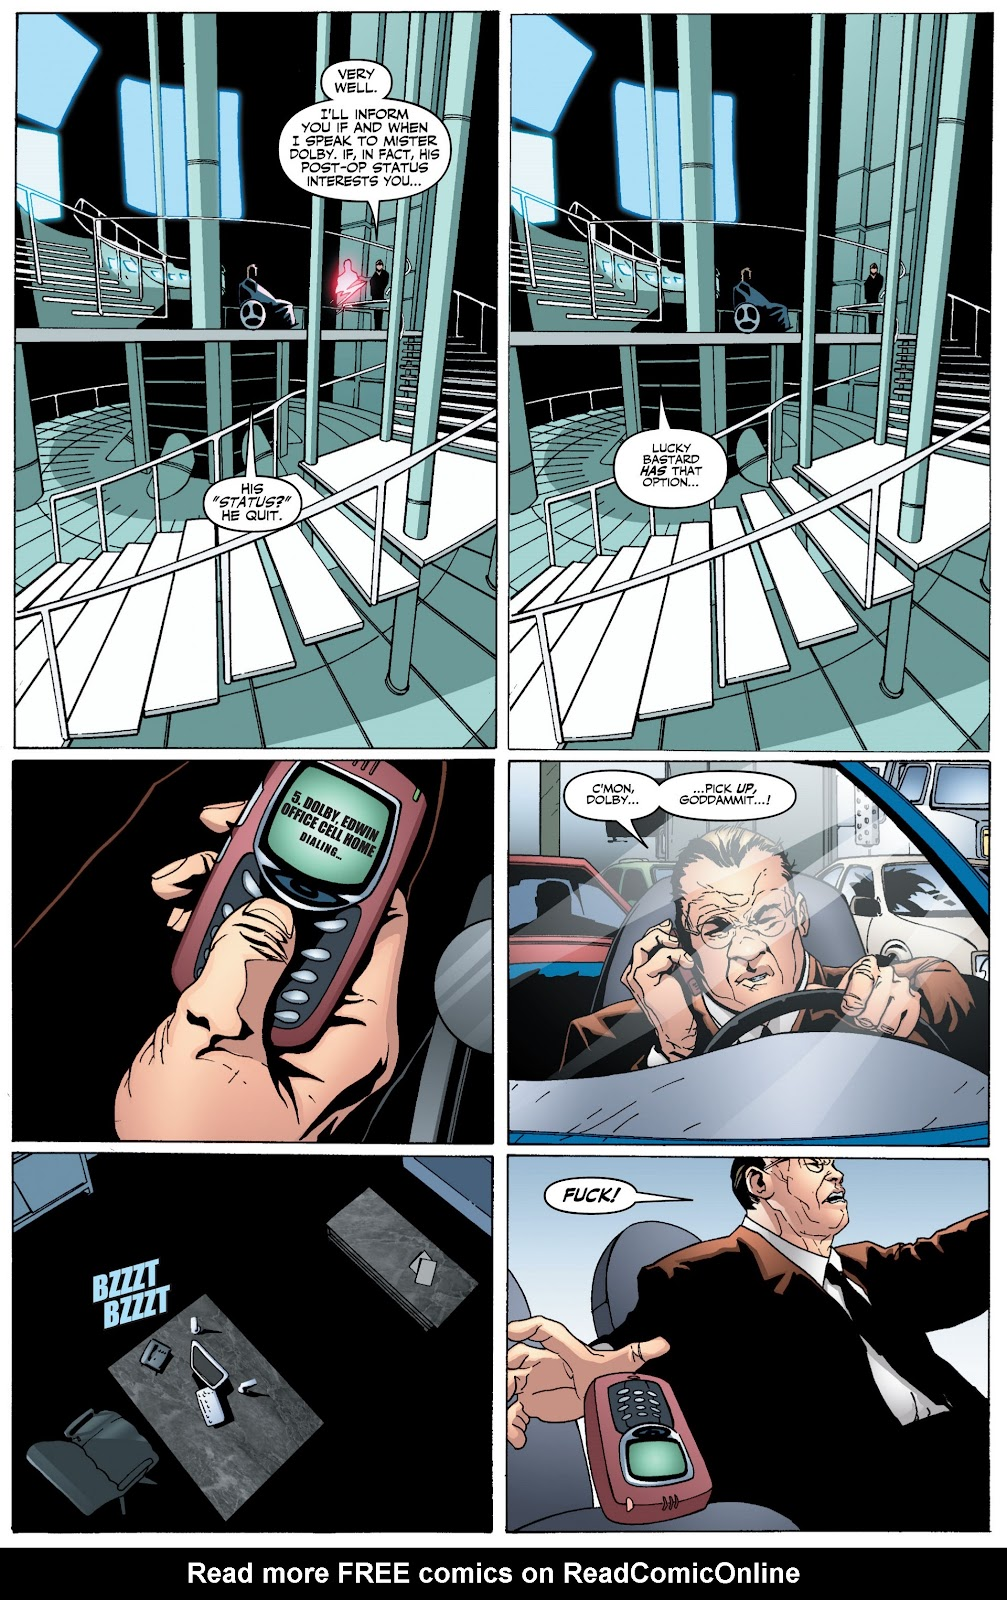 Wildcats Version 3.0 Issue #11 #11 - English 8